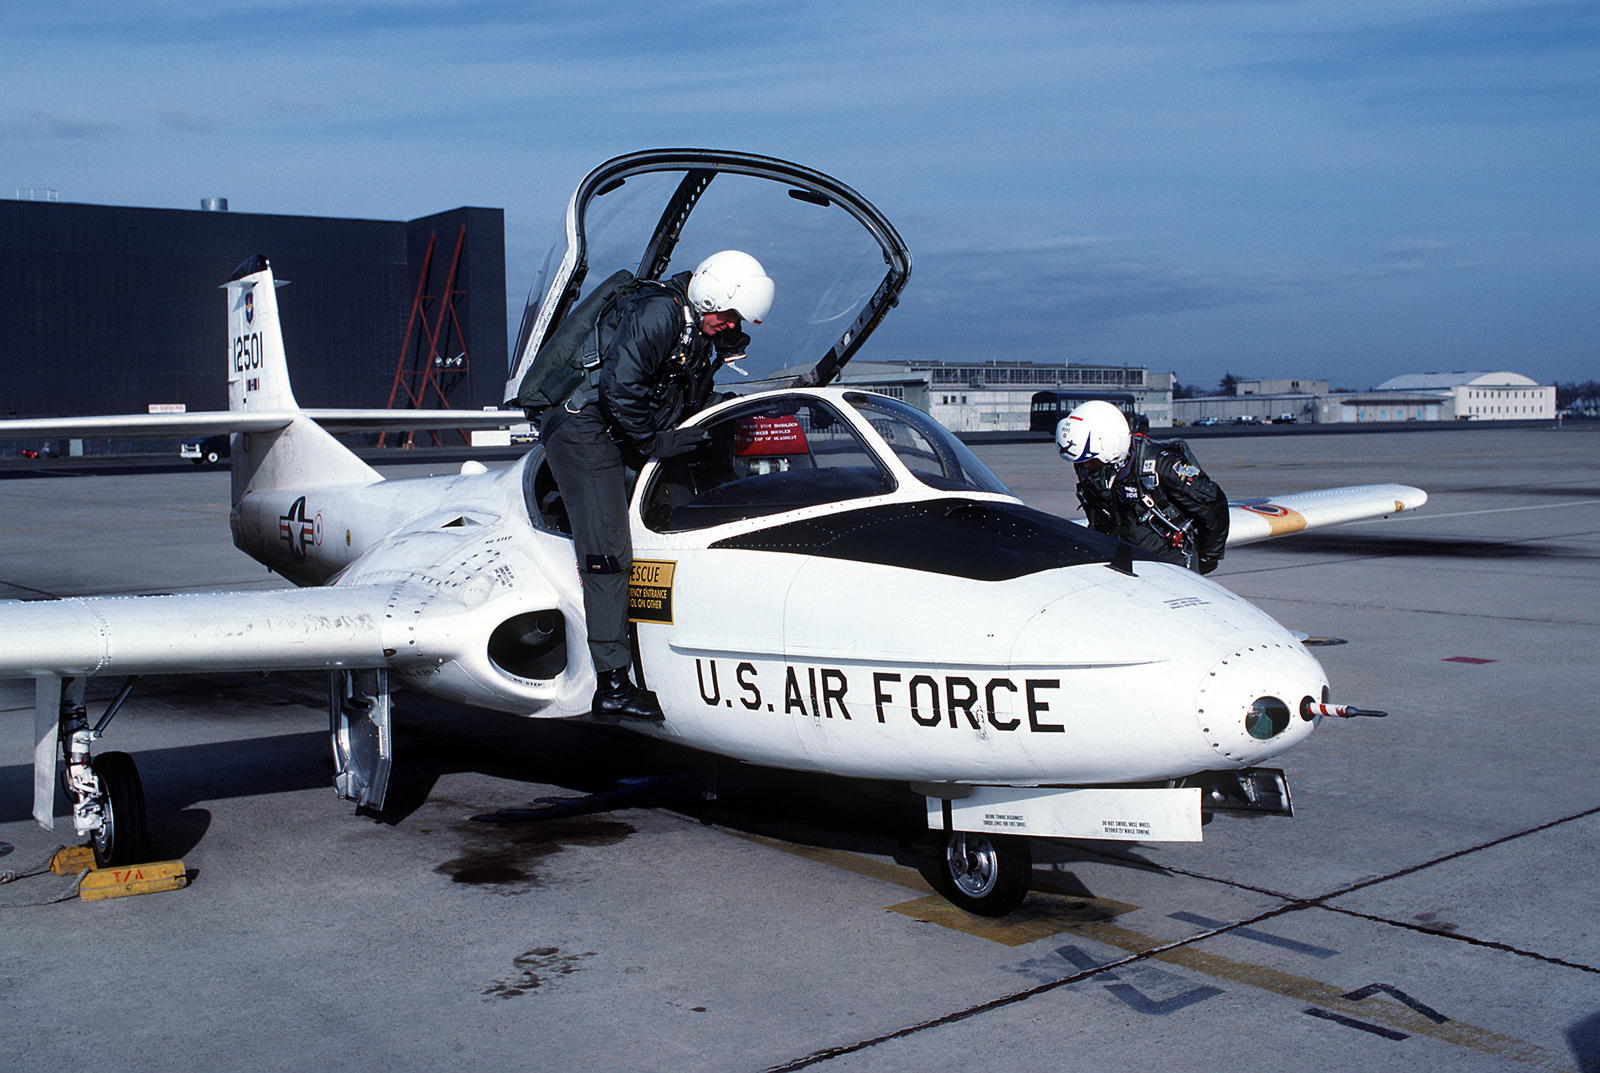 A student and instructor at the Air Training Command undergraduate navigator school climb into the cockpit of a T-37 training aircraft prior to making a flight